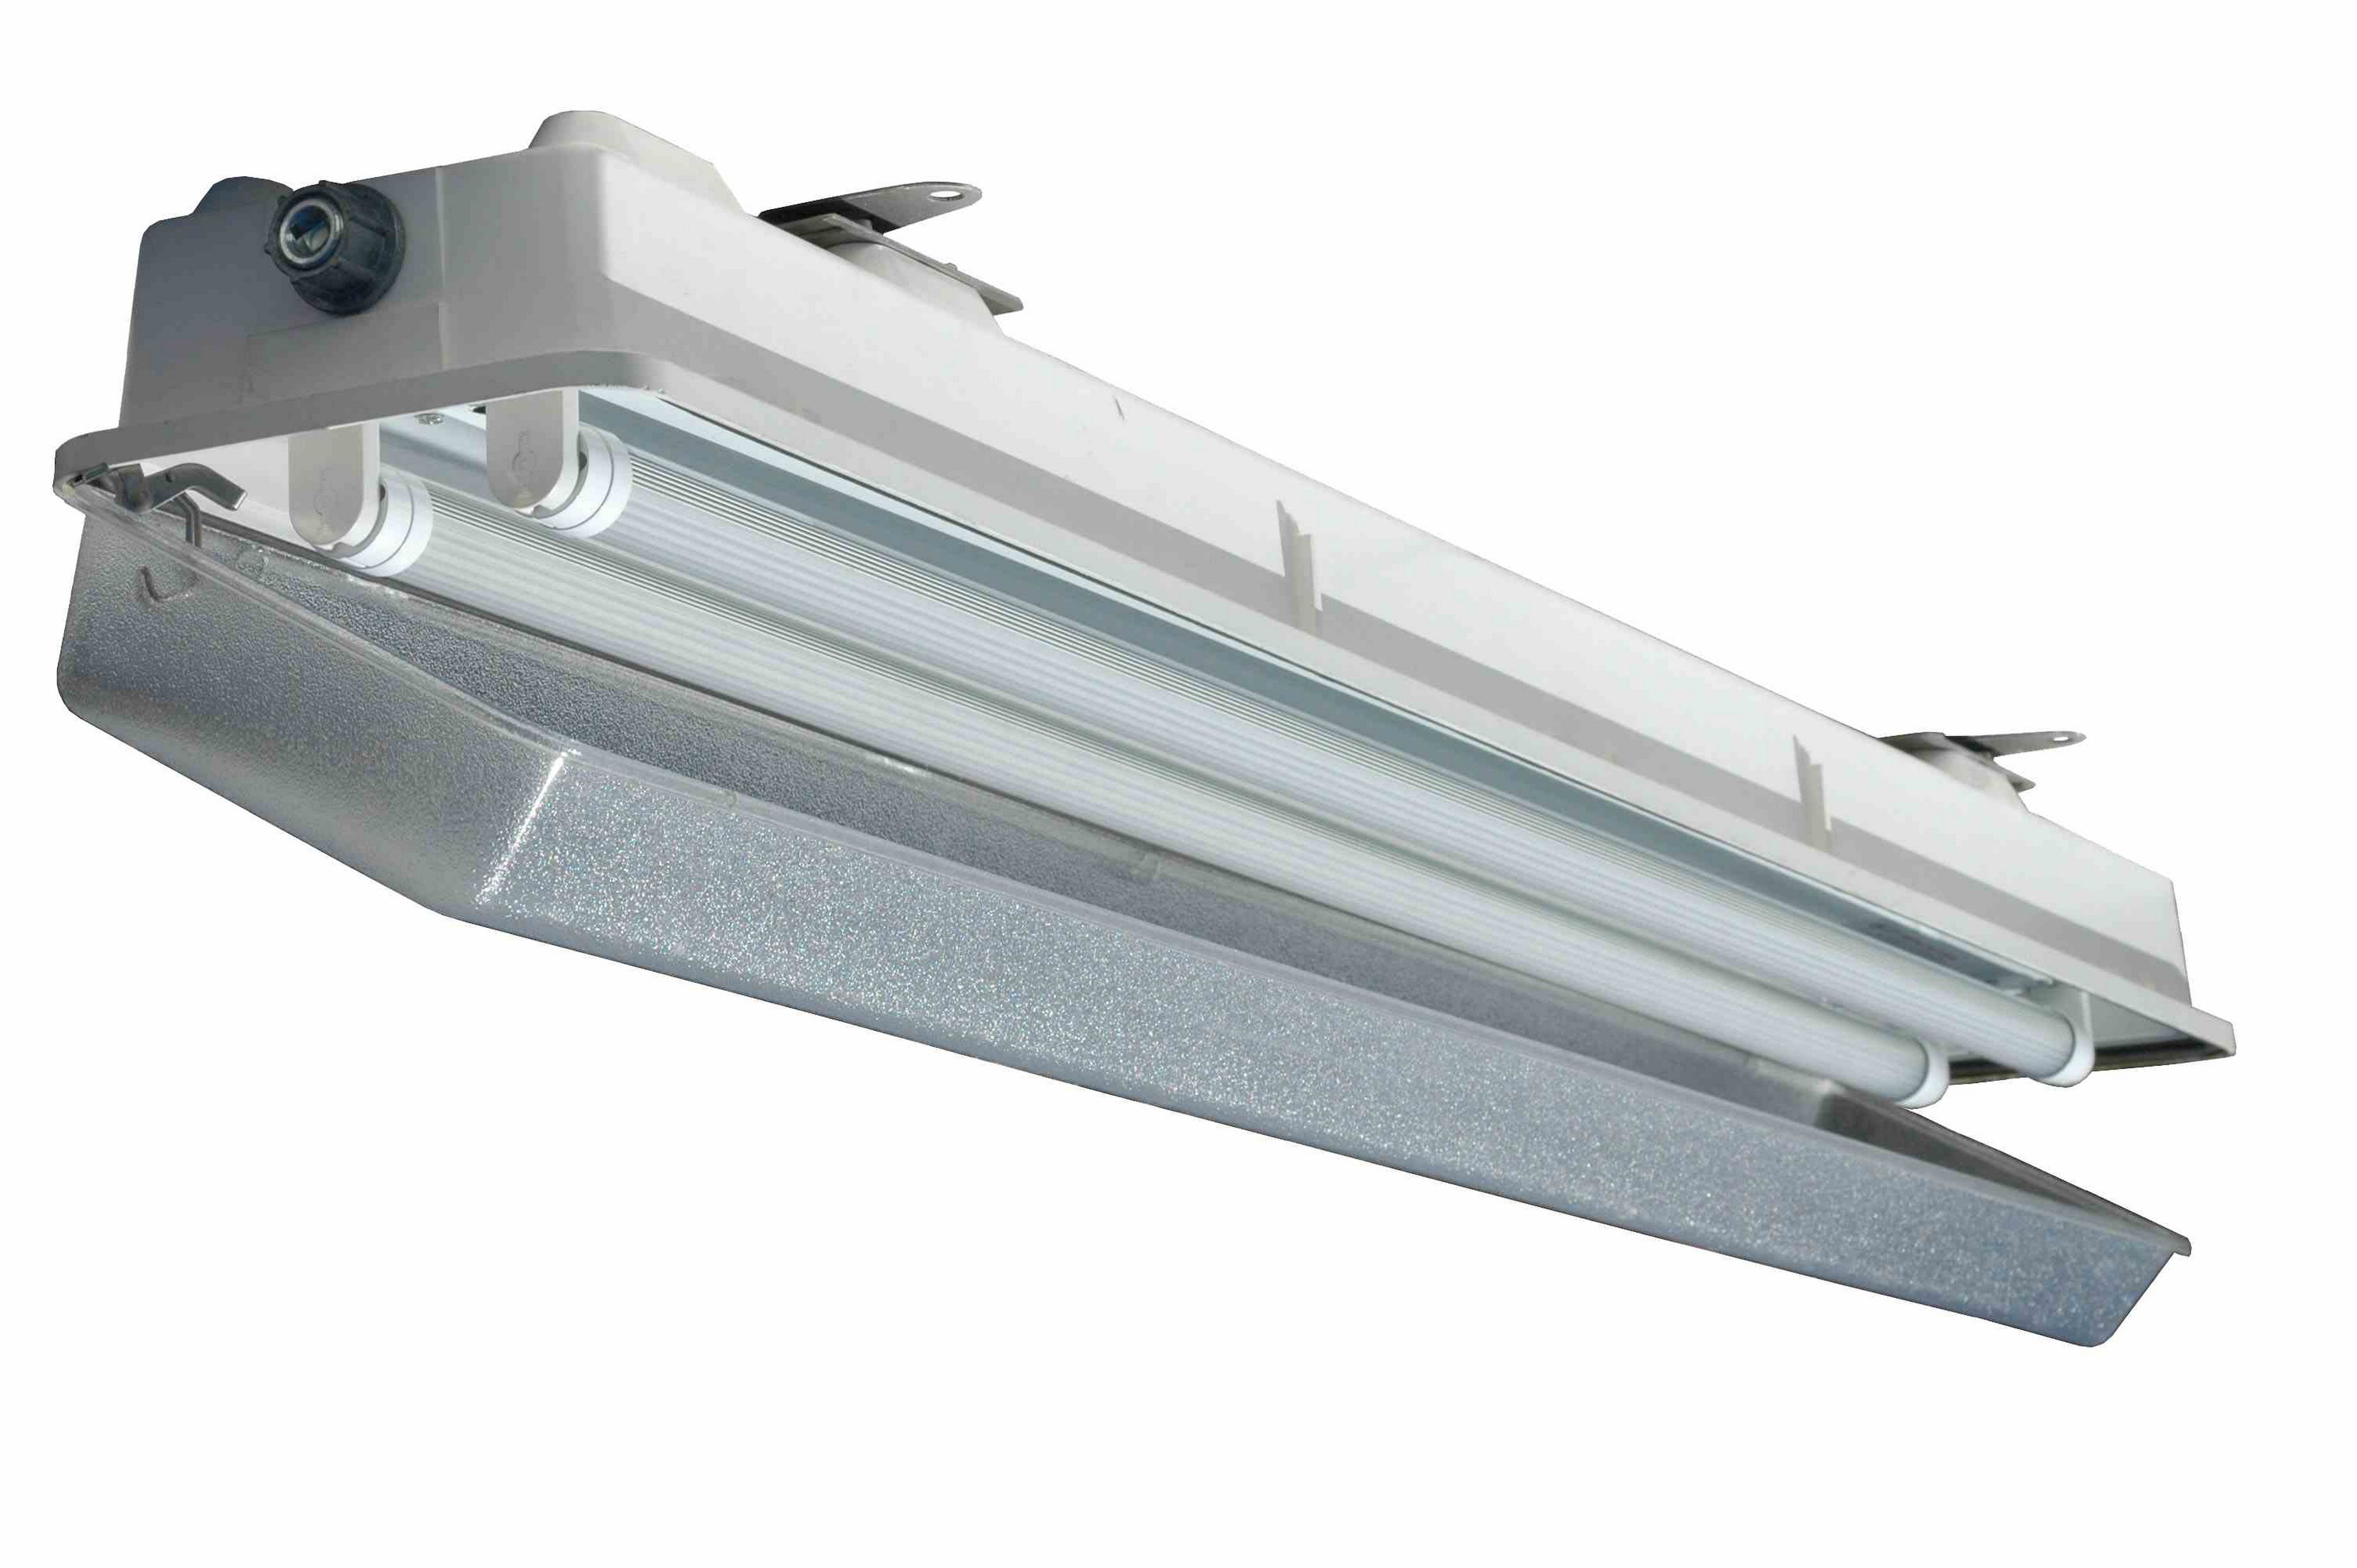 Class 1 Division 2 Emergency Led Light 4 2 Lamp